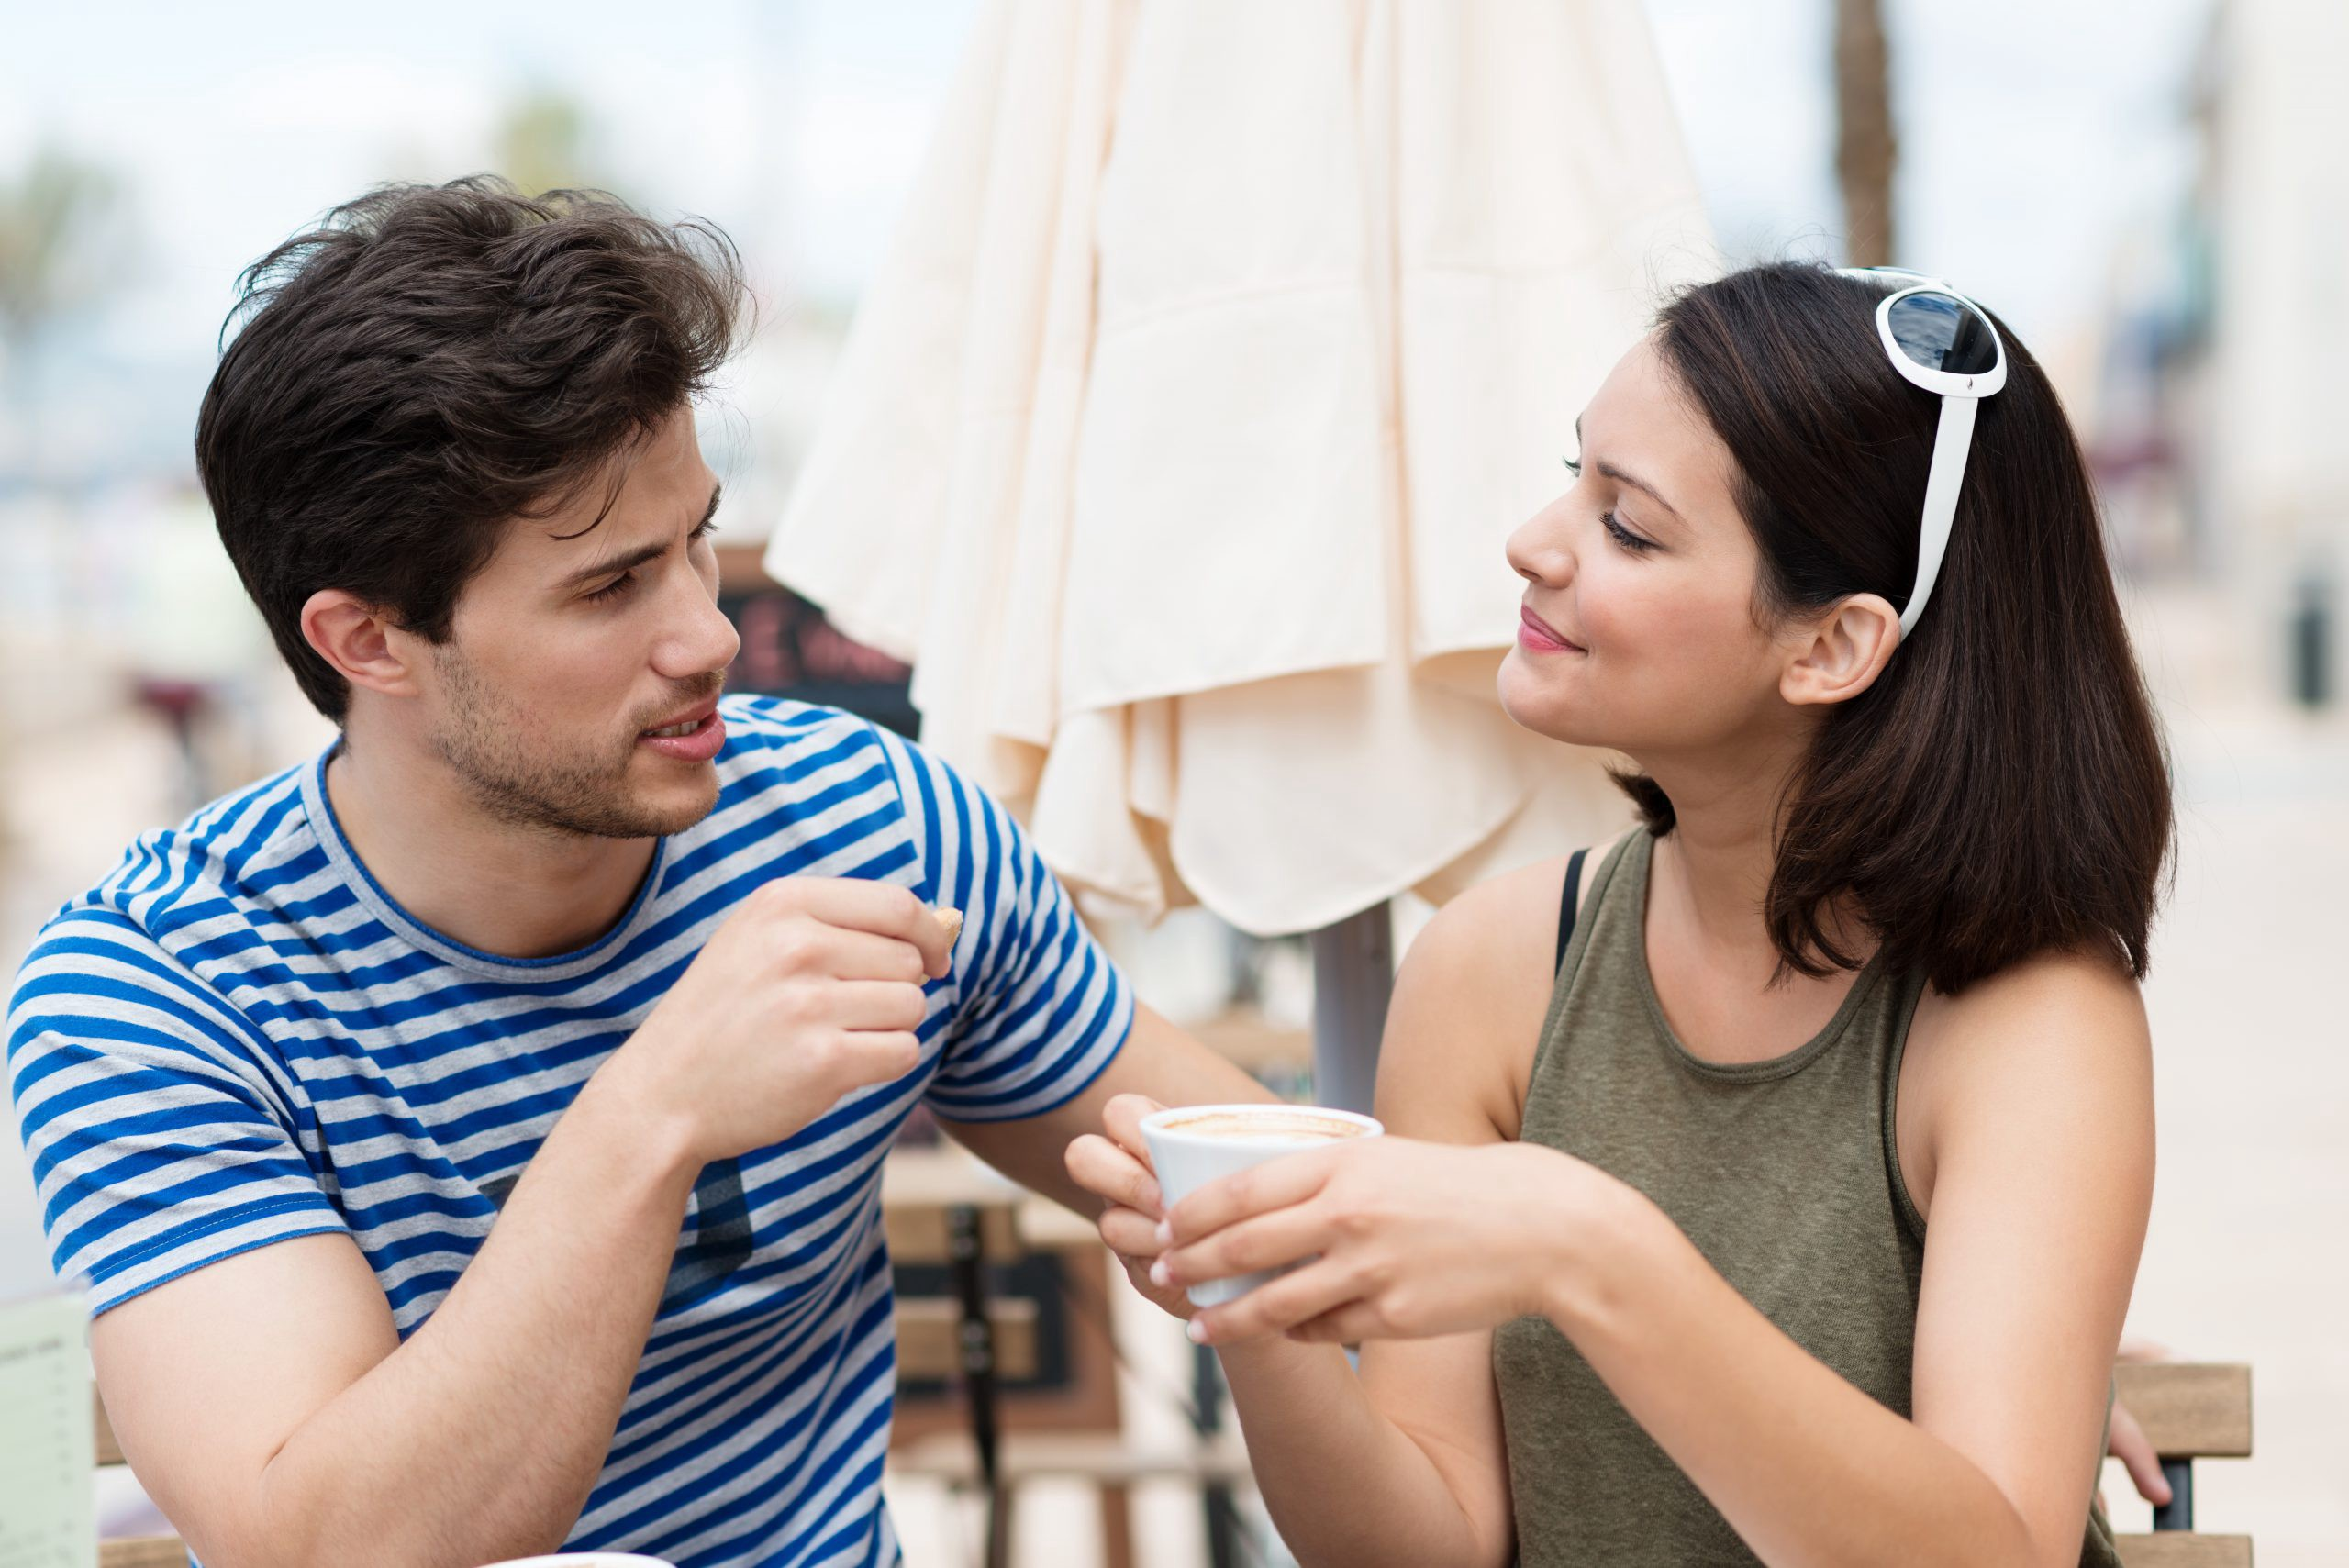 What To Do When Another Girl Flirts With Your Boyfriend | by ♡ Better Date  Than Never ♡ | Medium